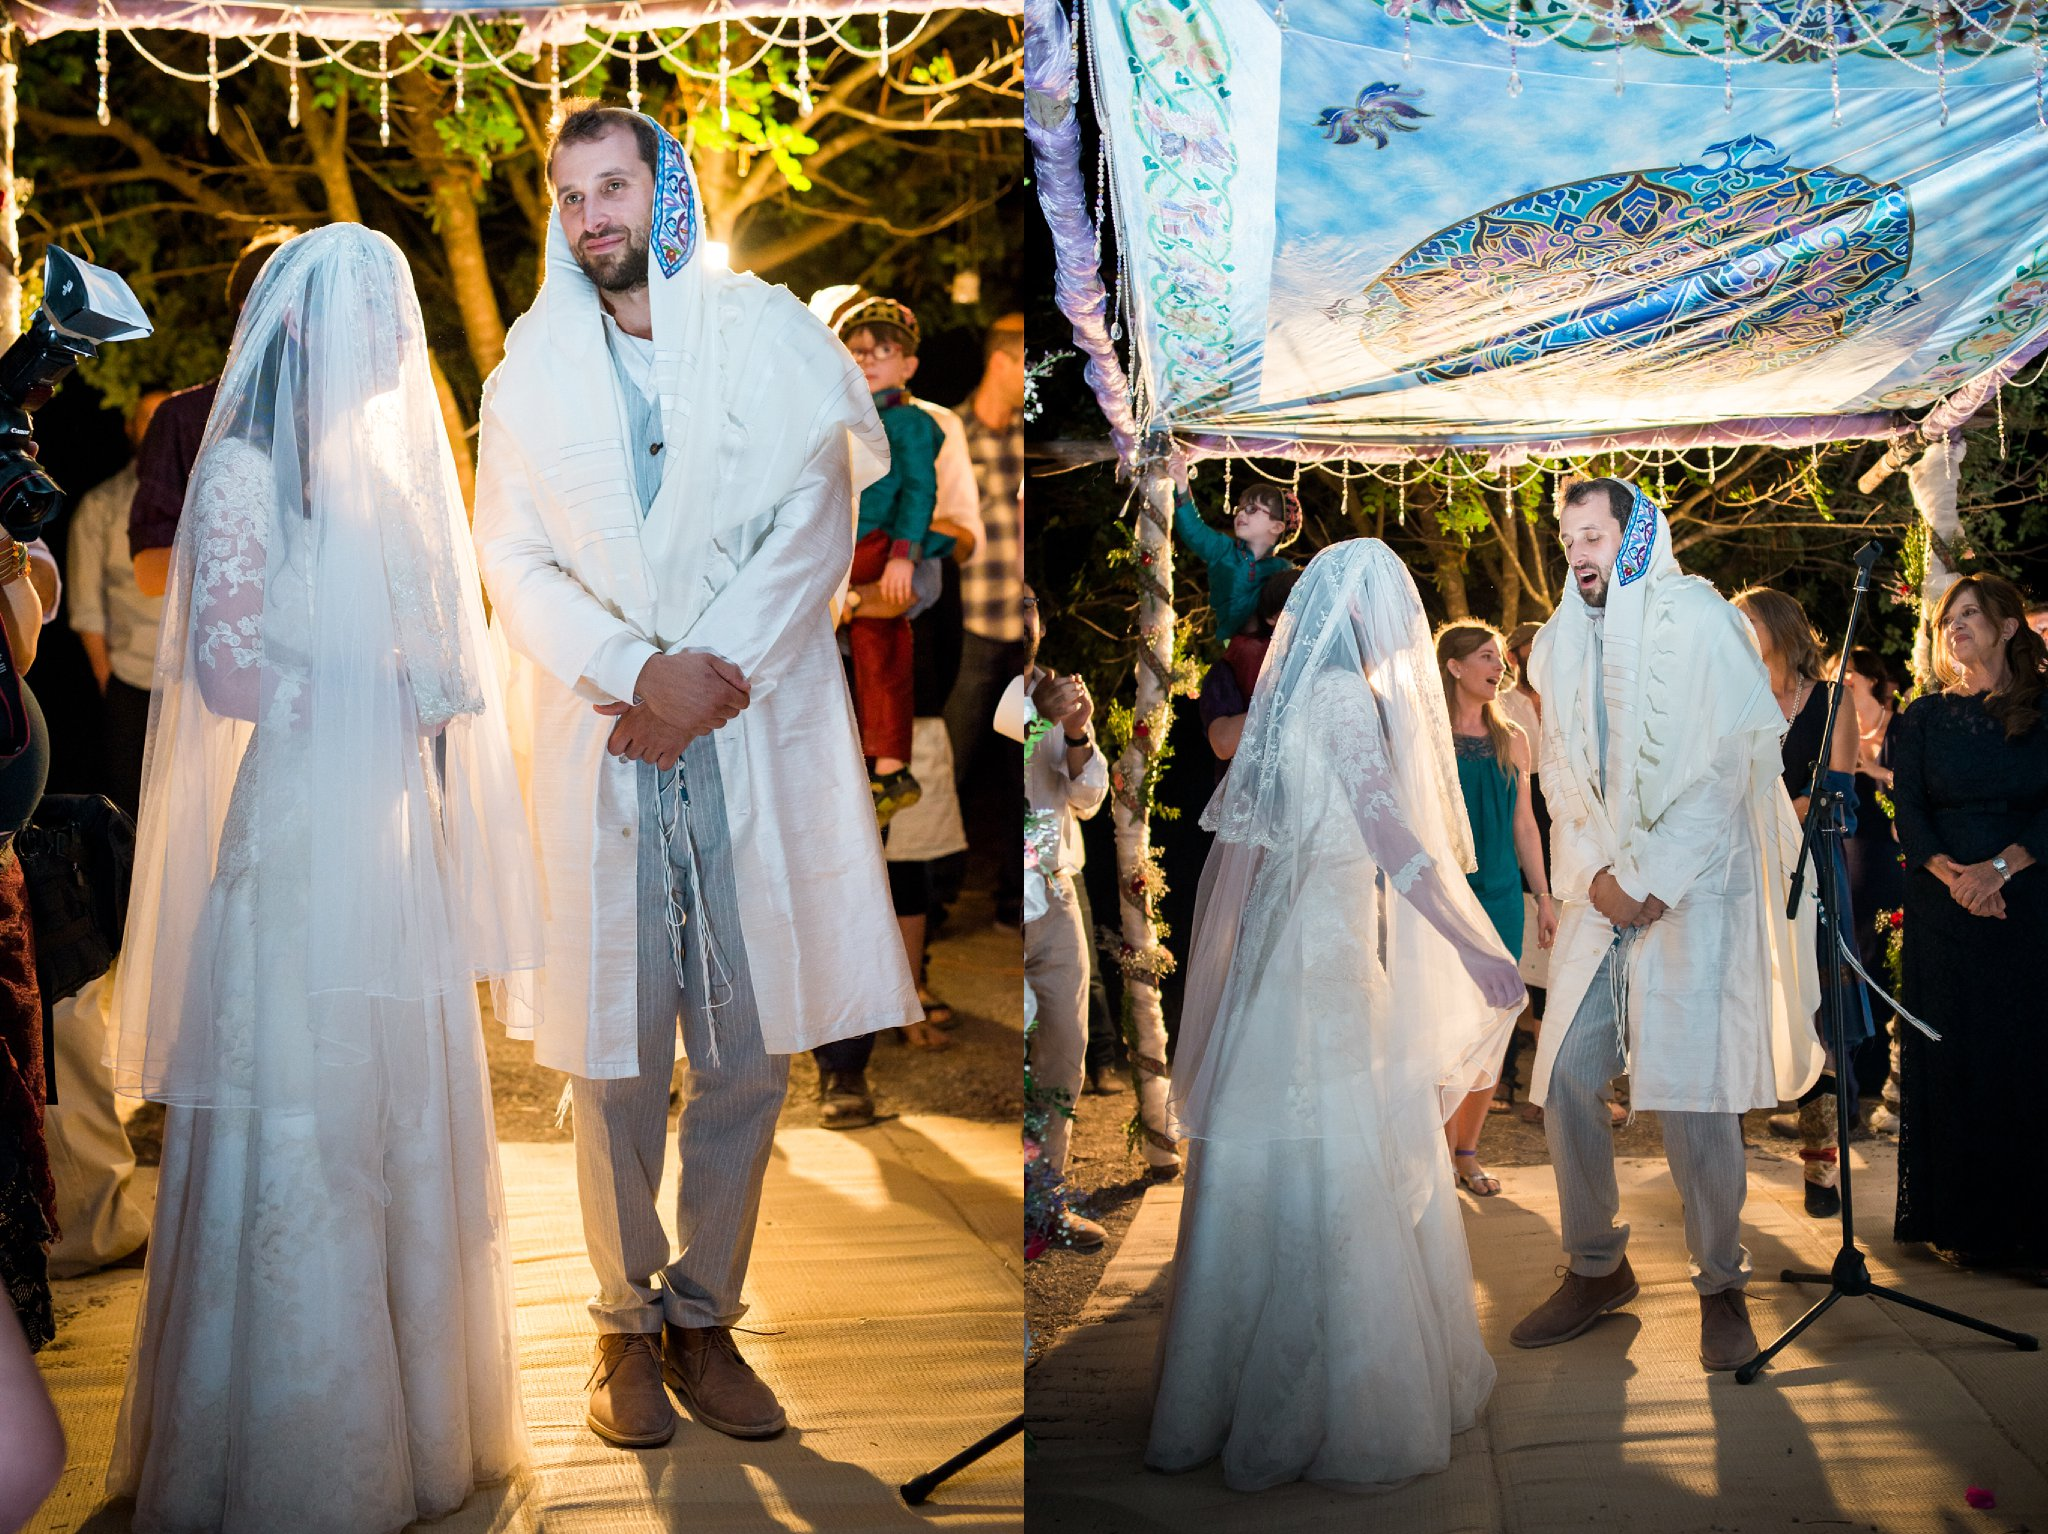 jewish-wedding-binyamina-israel-kate-giryes-photography-172_WEB.jpg